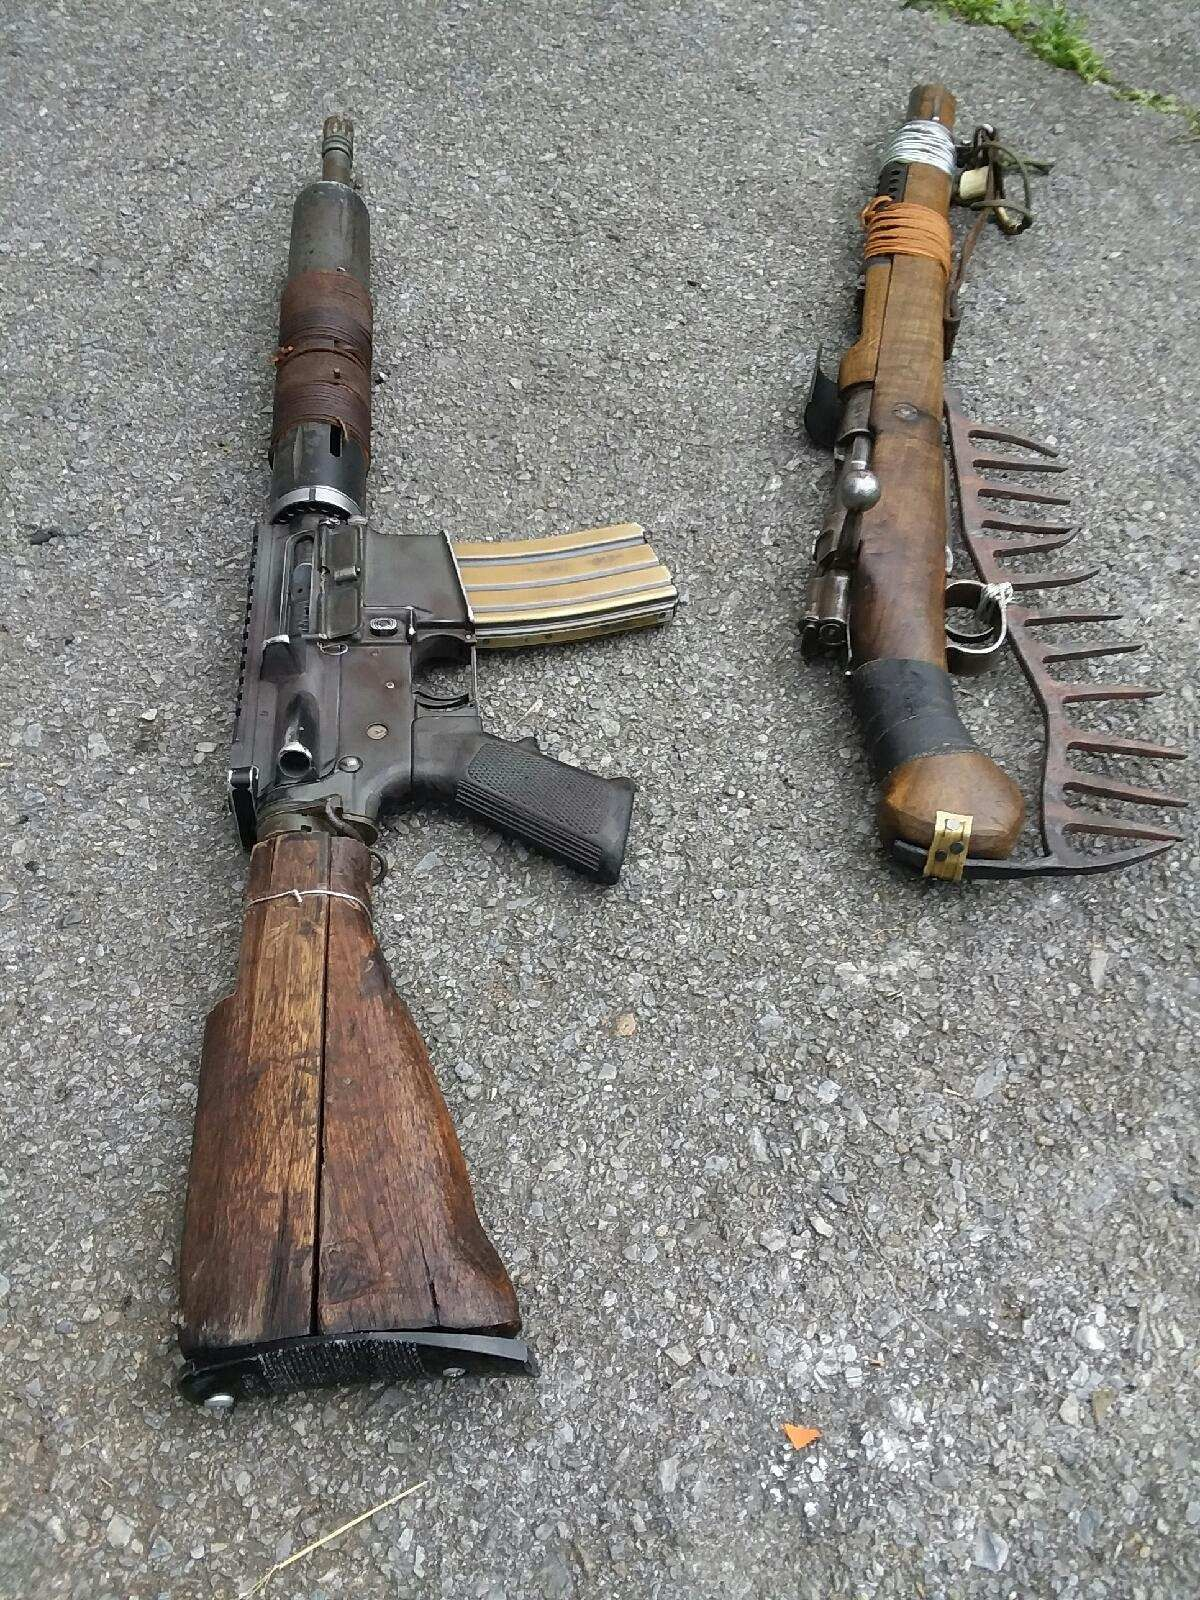 Pin On Post Apoc Improvised Weapons